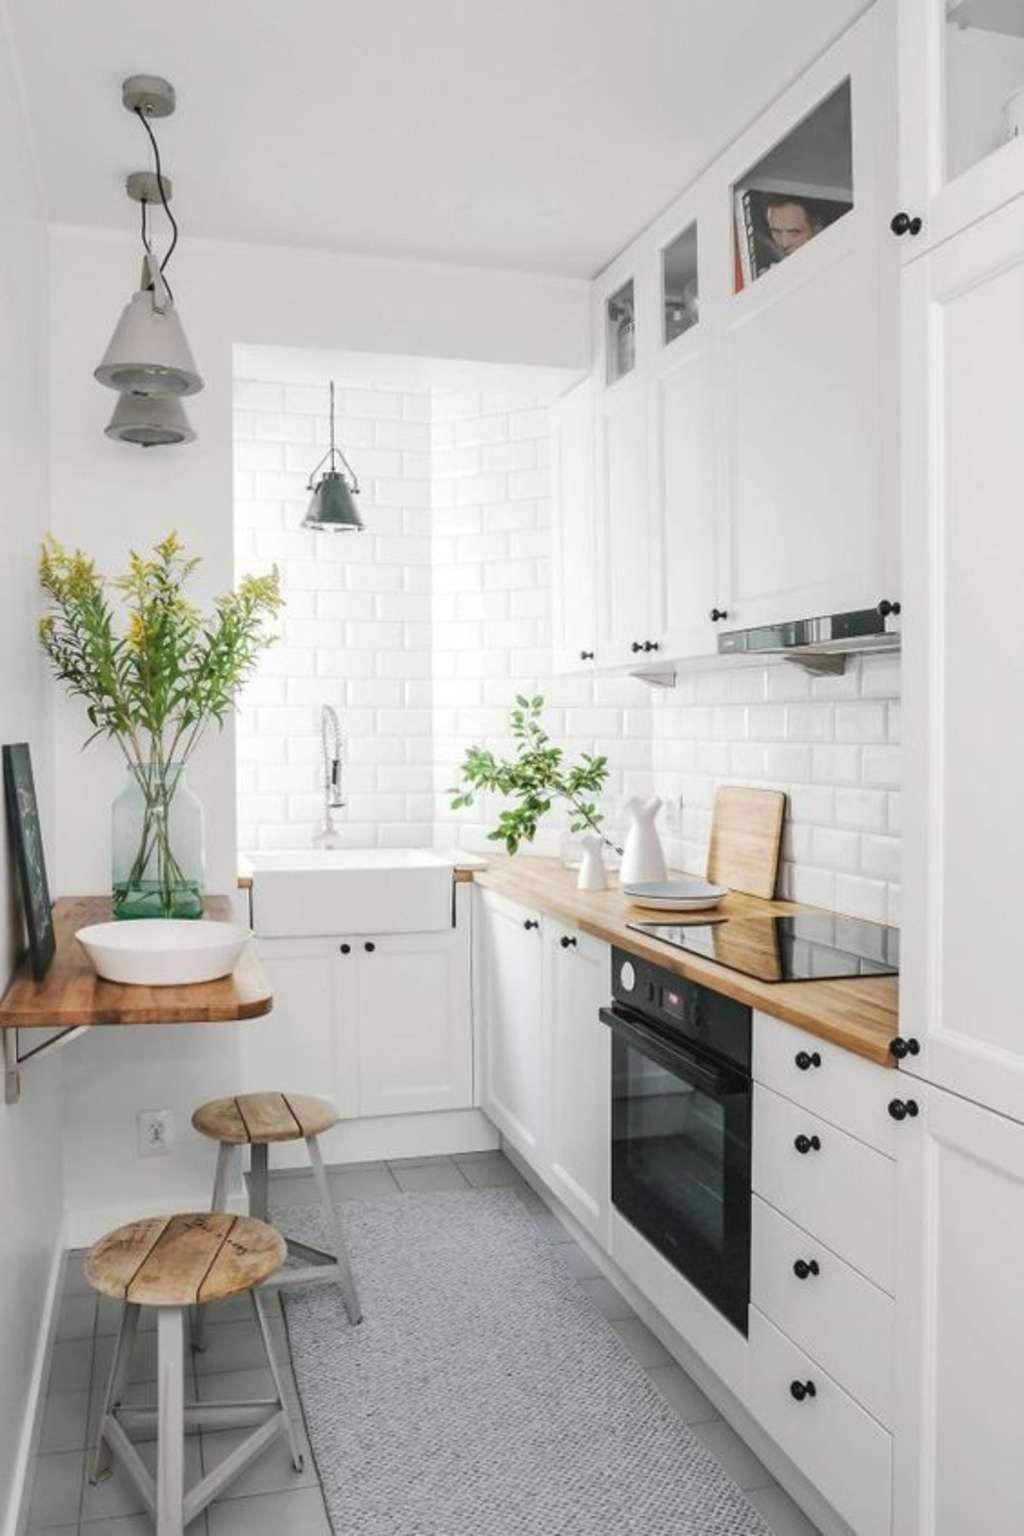 10 of the Smartest Small Kitchens We've Ever Seen